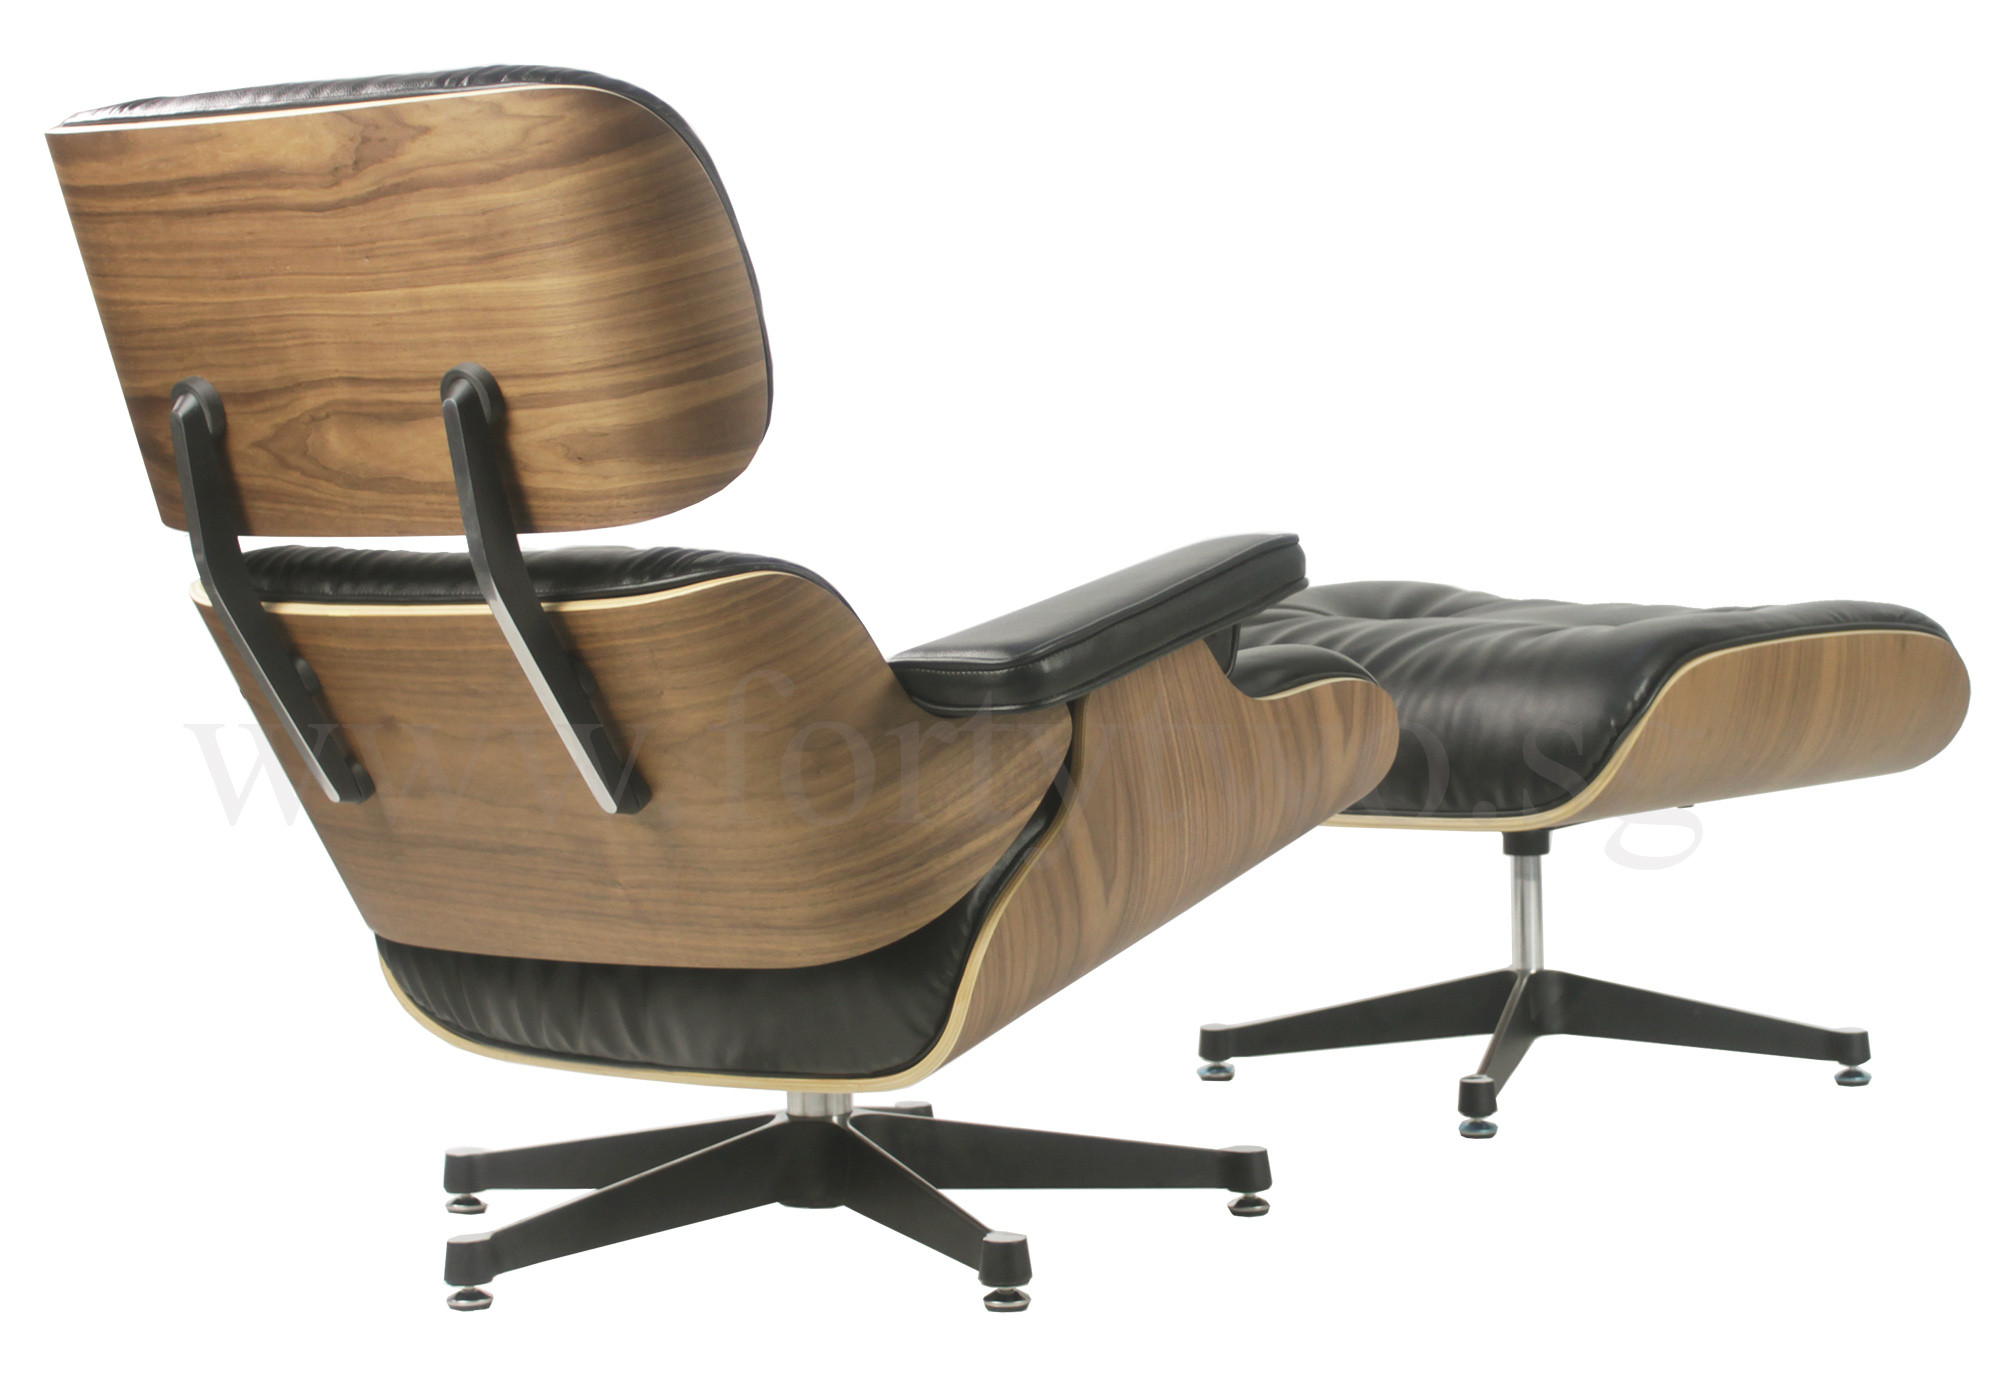 Designer Replica Eames Lounge Chair -Black